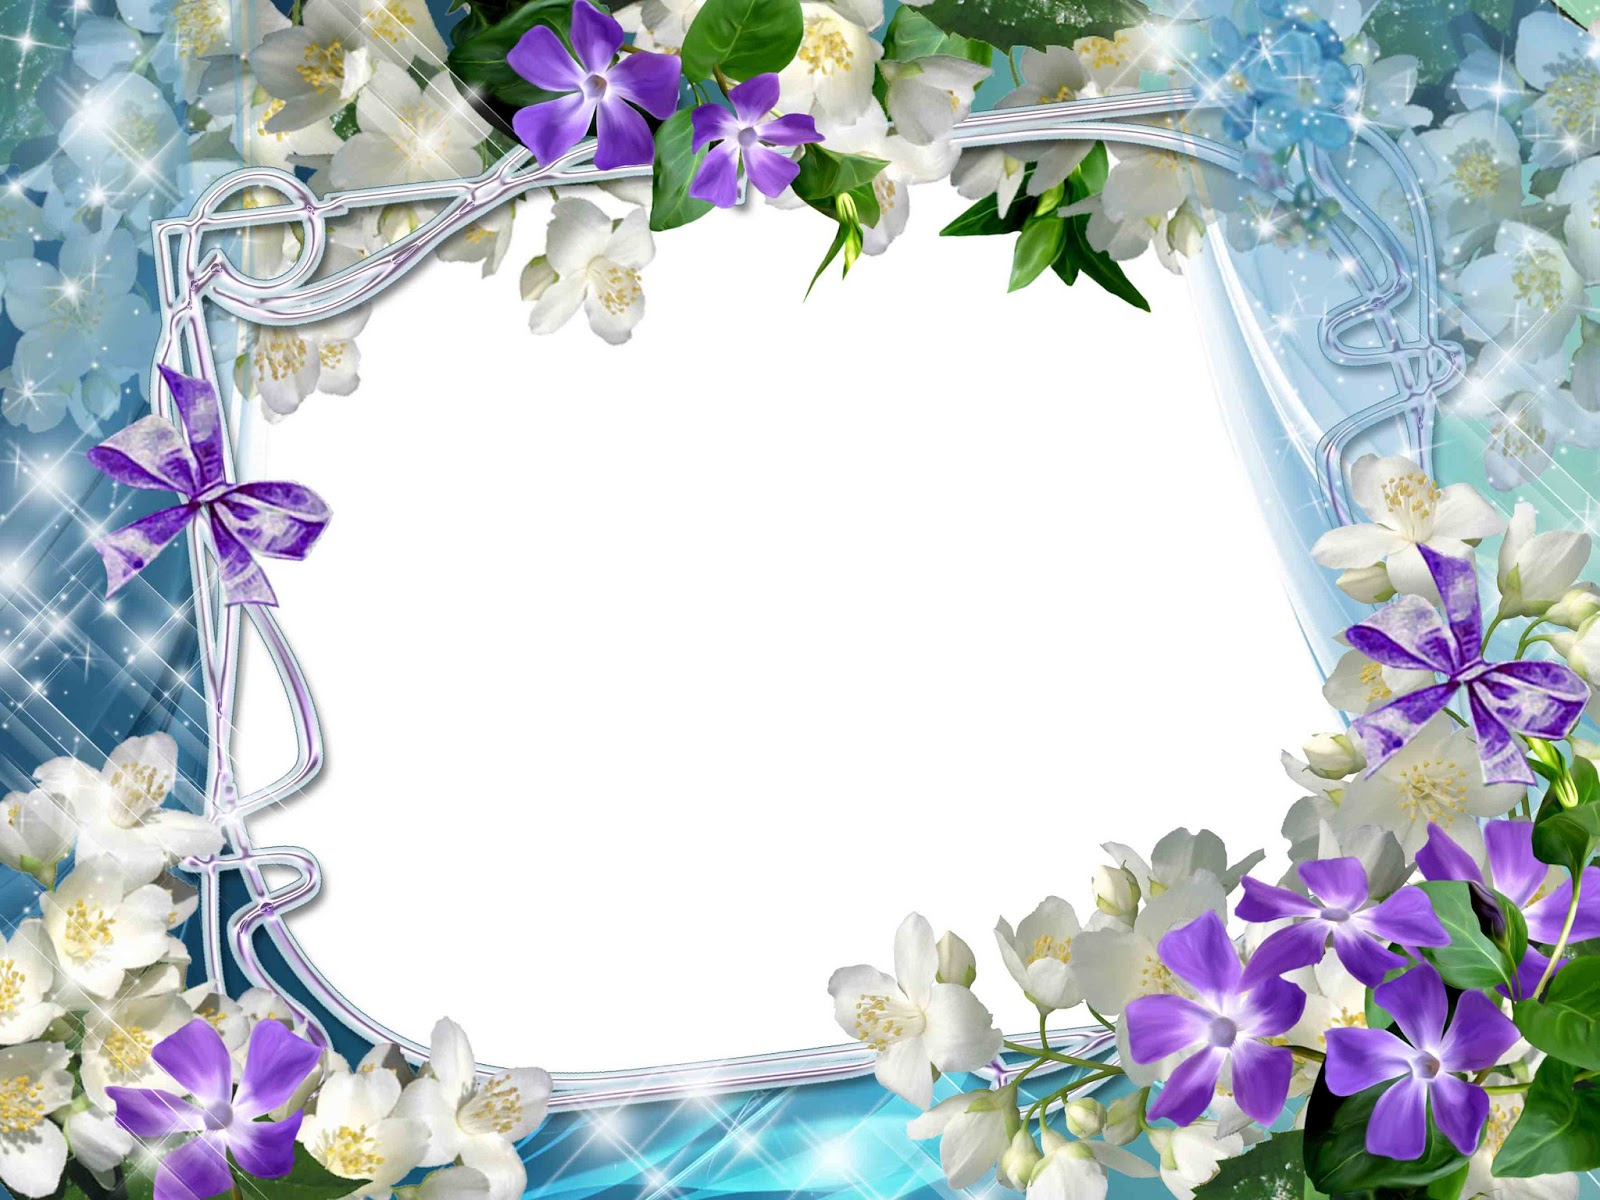 12 Psd Frame Free Download Images - PSD Frames for Photoshop Free ...